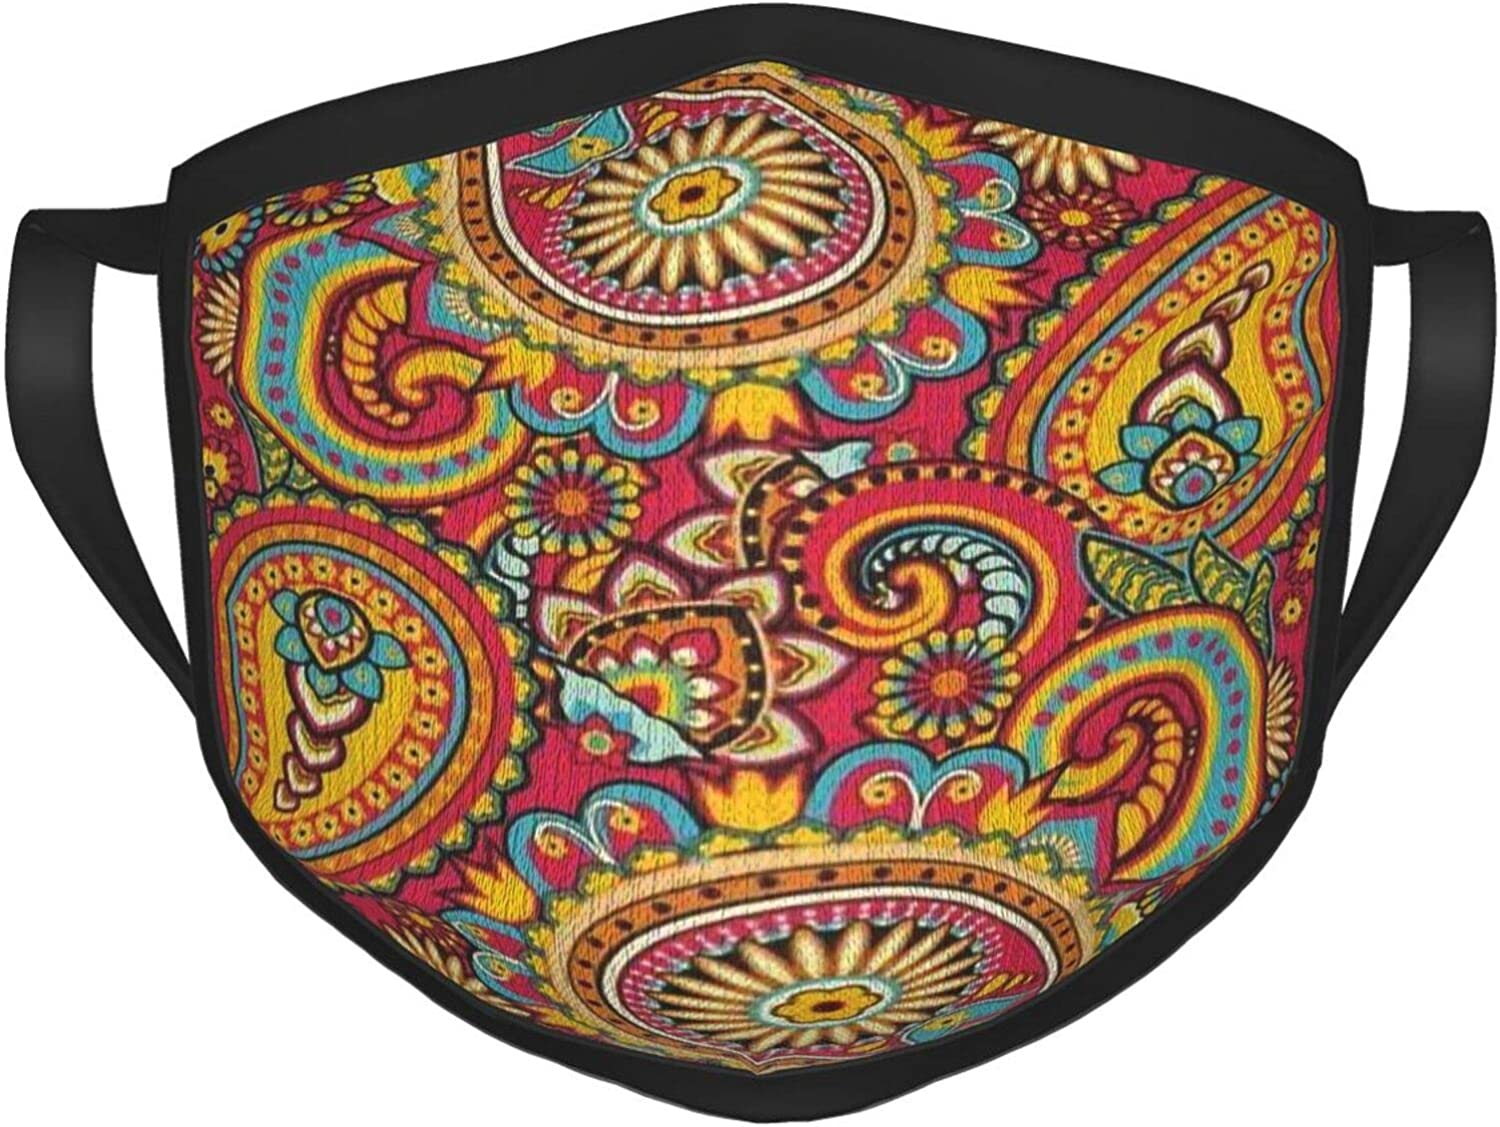 LANJYF 2 Packs Reusable Mouth Wear, Paisley Pattern Unisex Face Cloth